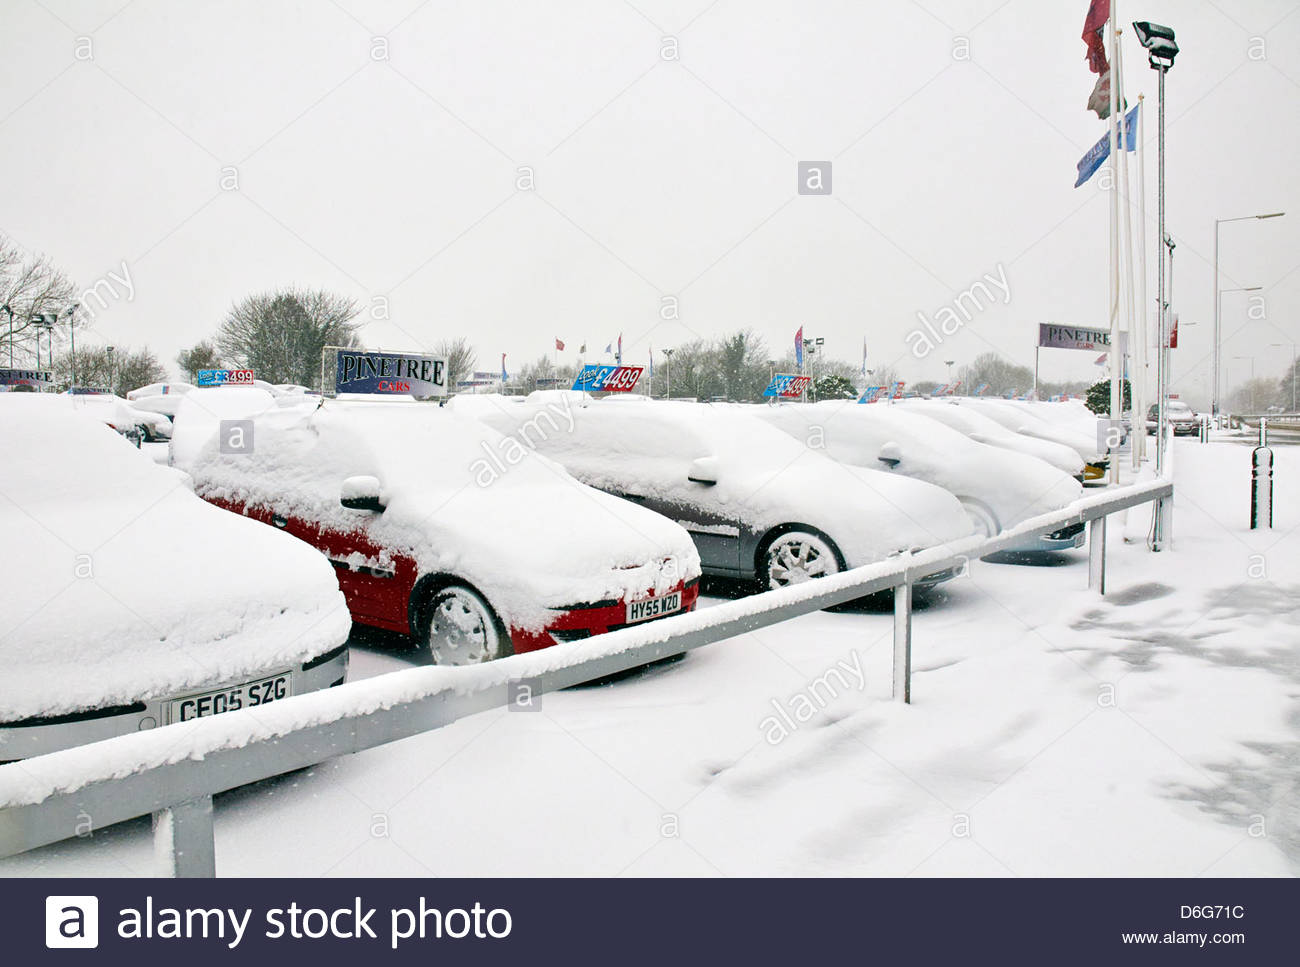 a157d033fb secondhand used car dealers with vehicles covered in deep snow in  wintertime - Stock Image